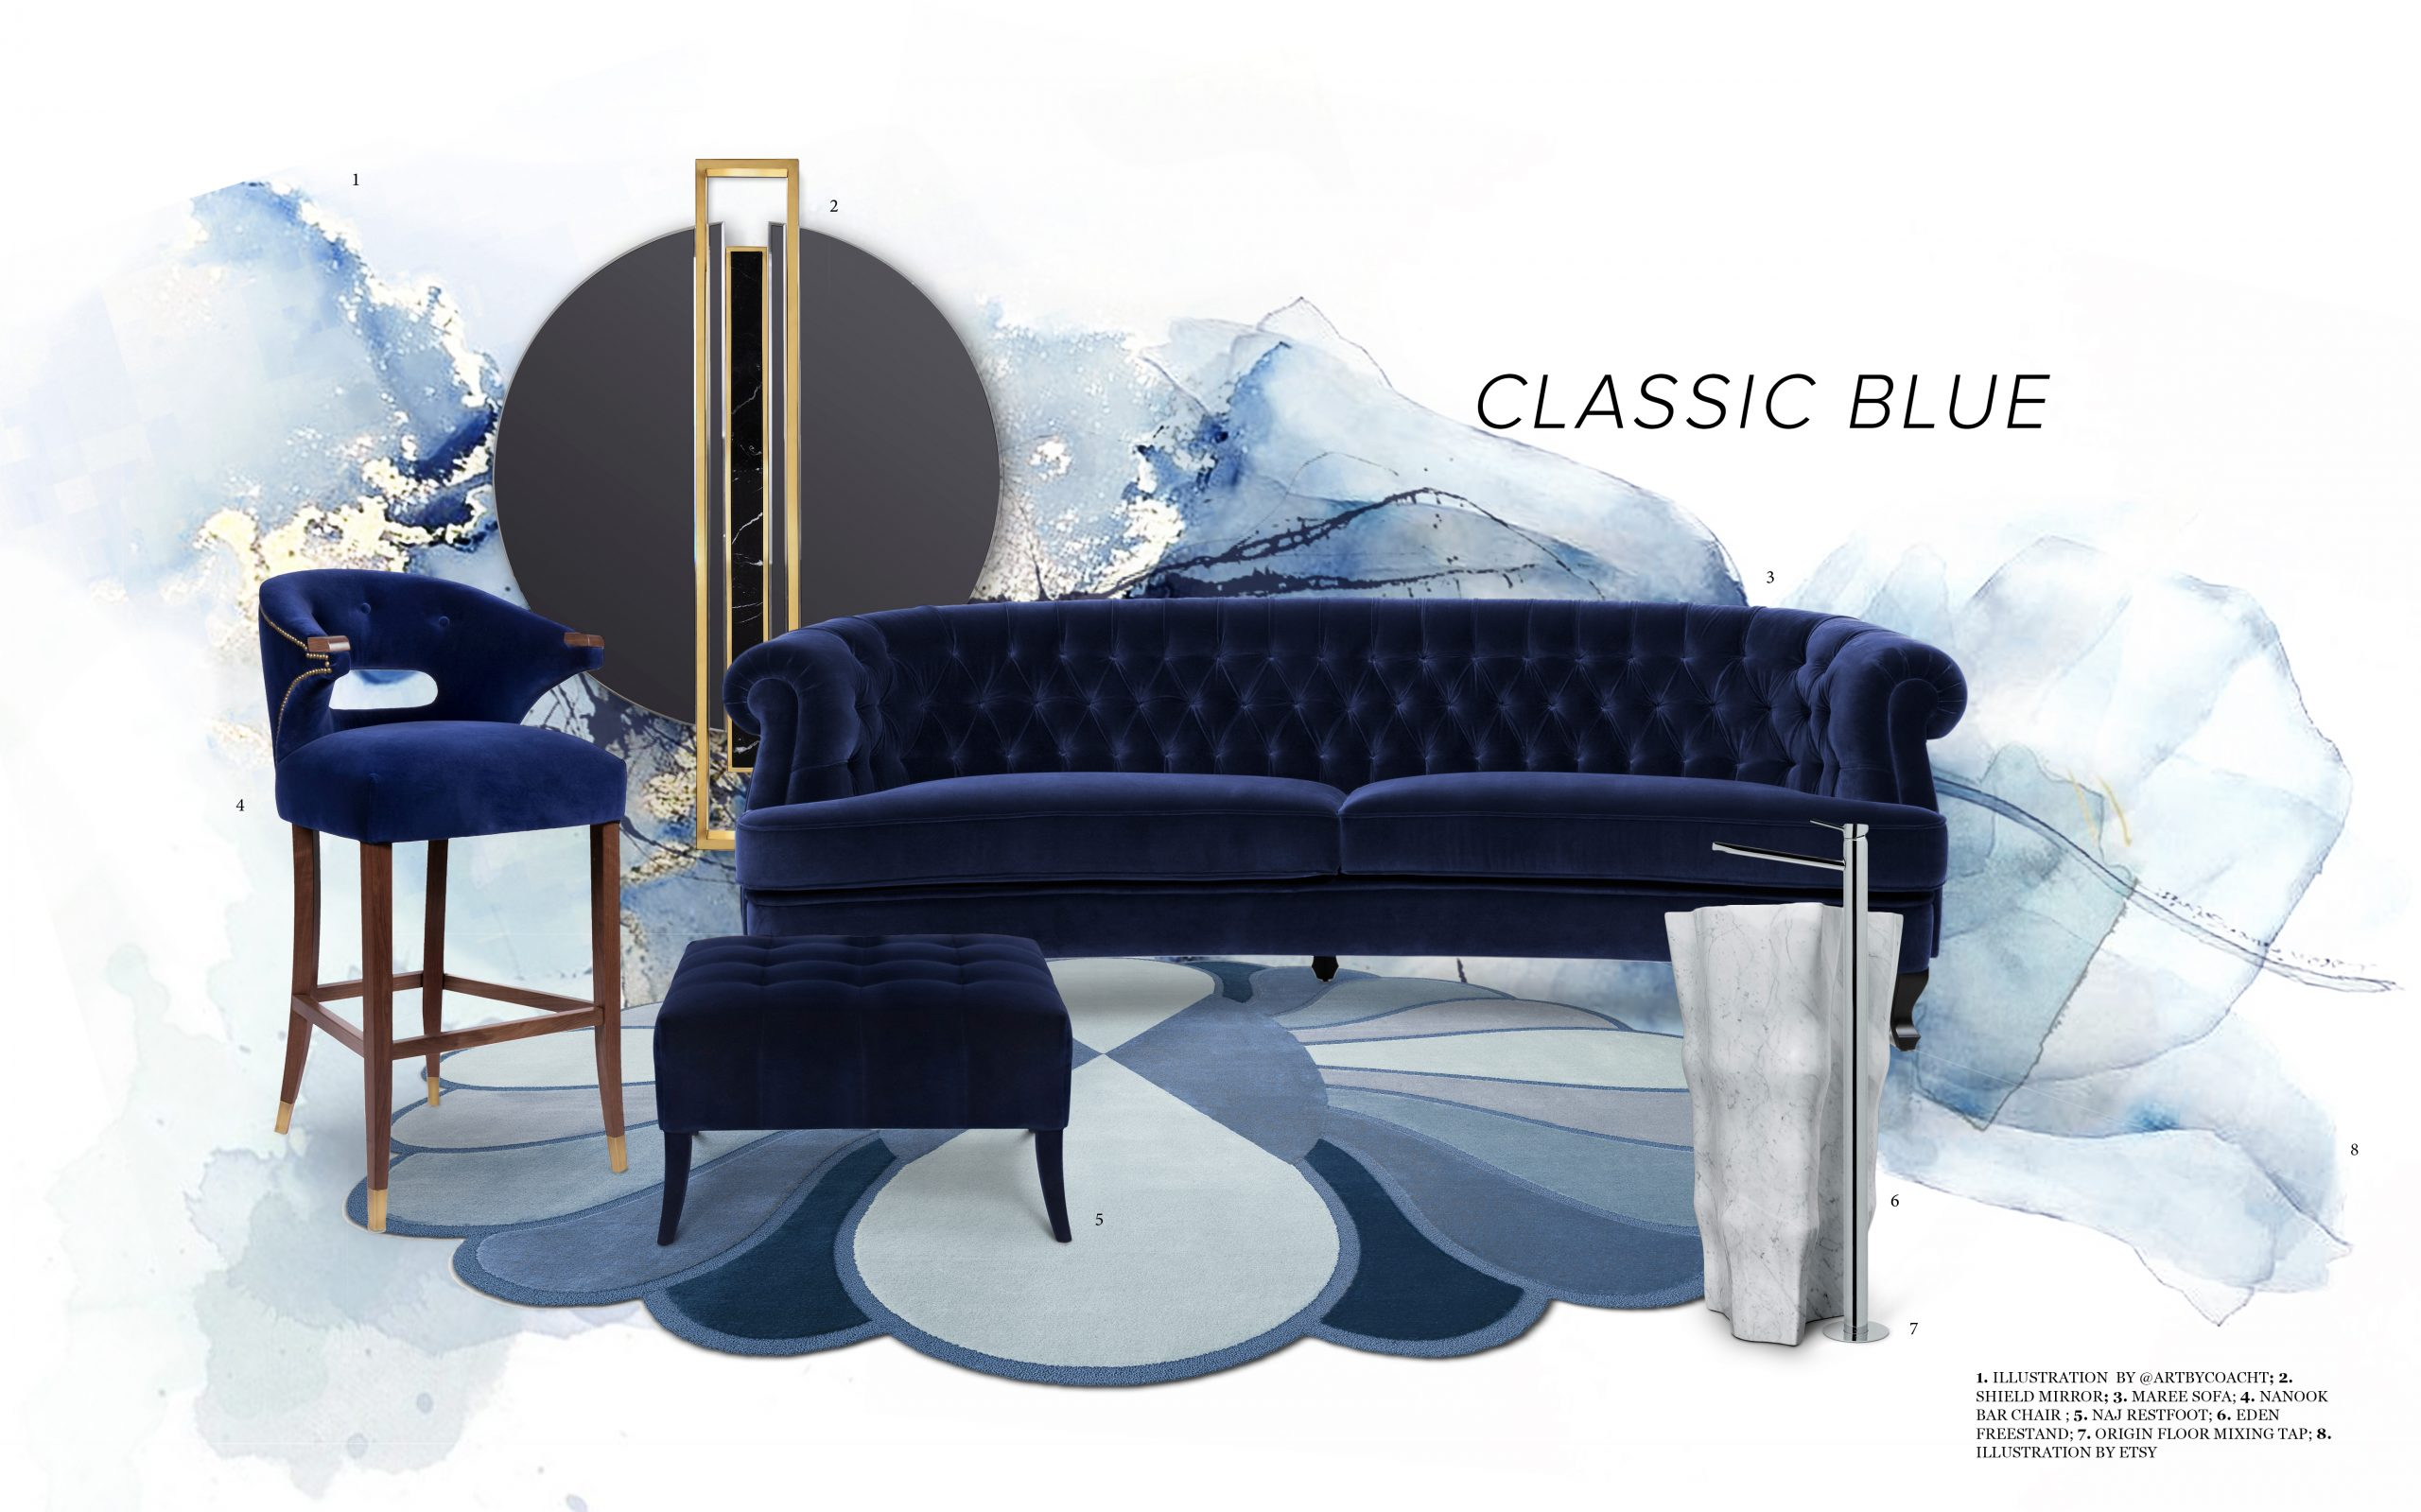 Classic Blue classic blue Classic Blue – Pantone Released the Color of the year 2020 classic blue scaled